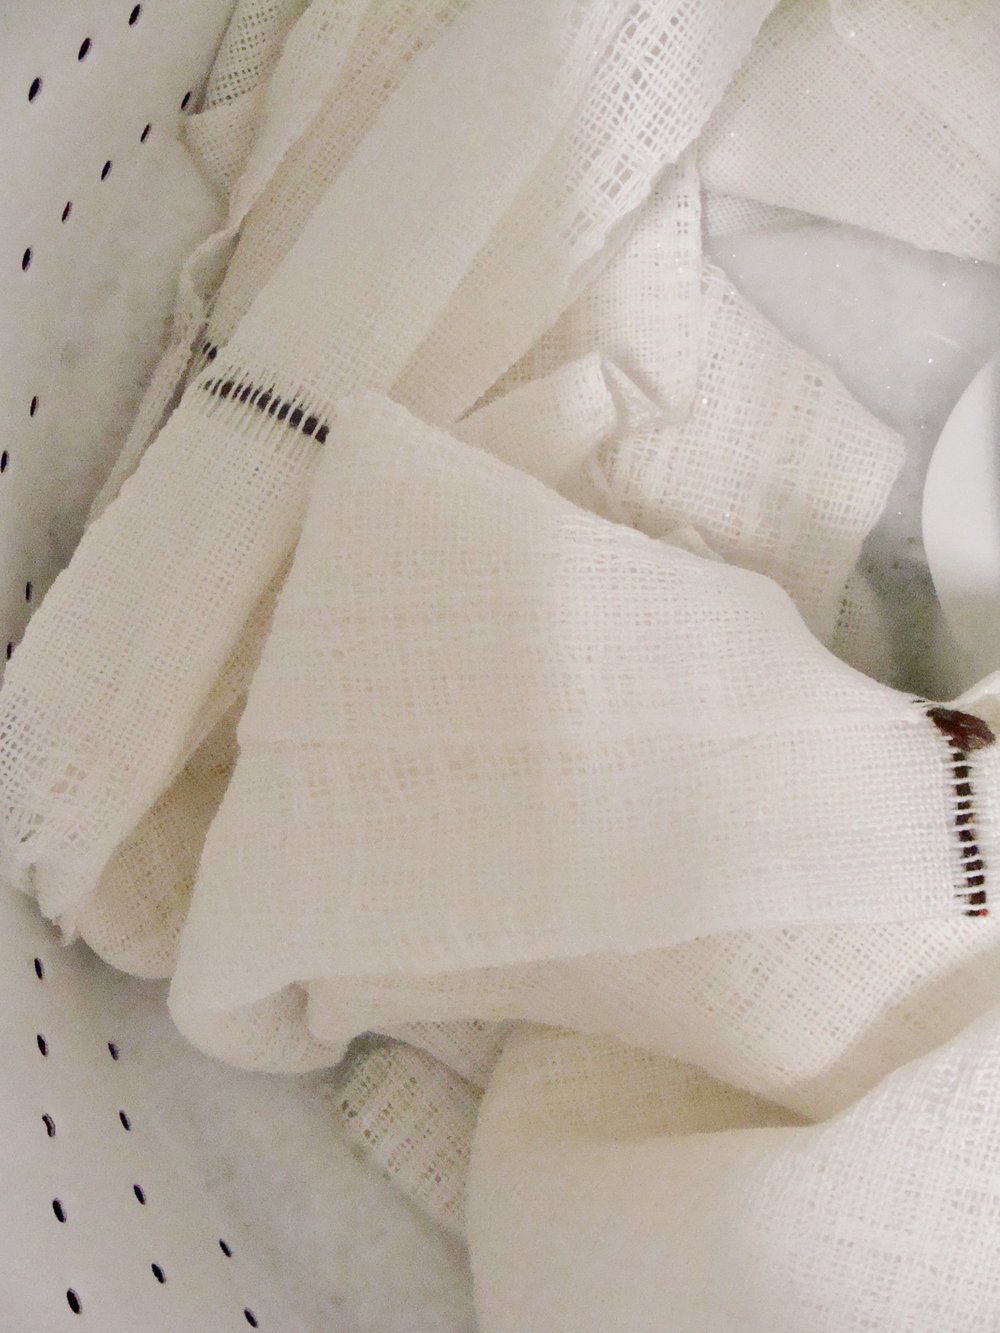 washing woven towels